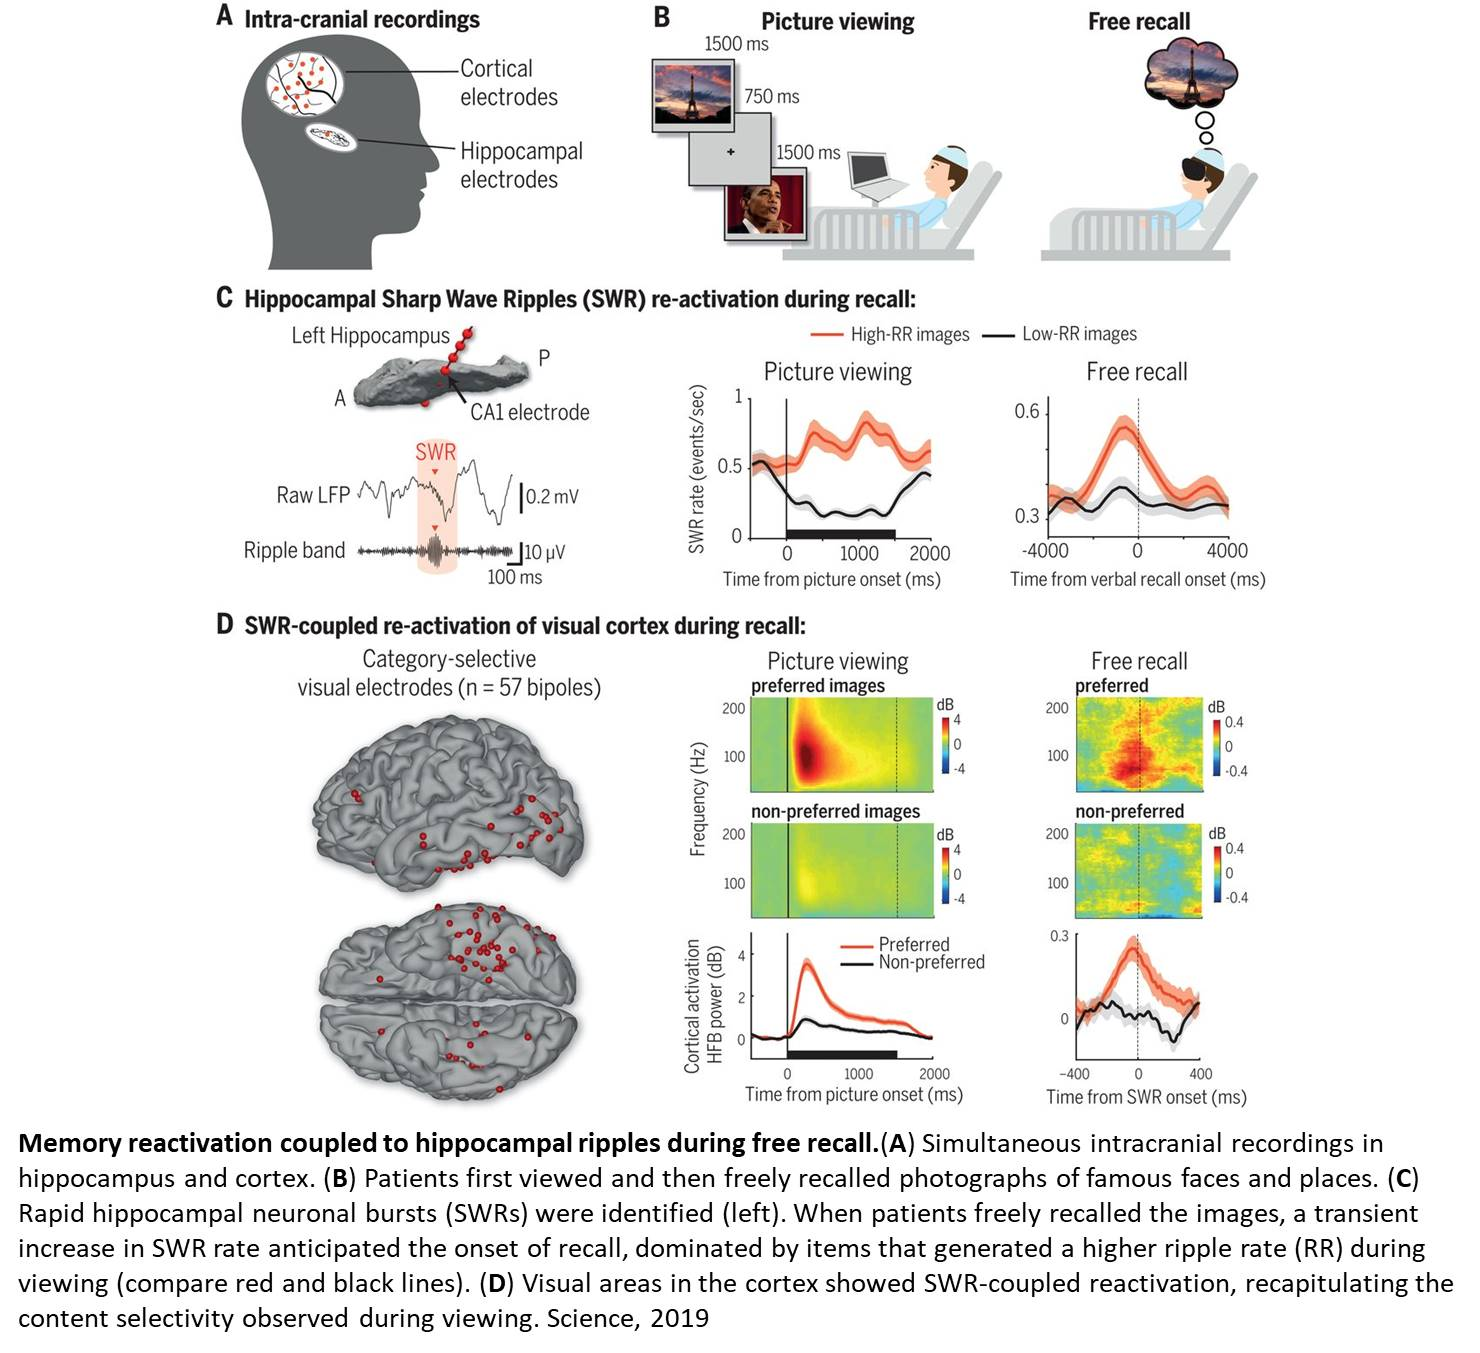 Hippocampal ripples in human memory formation and recall!